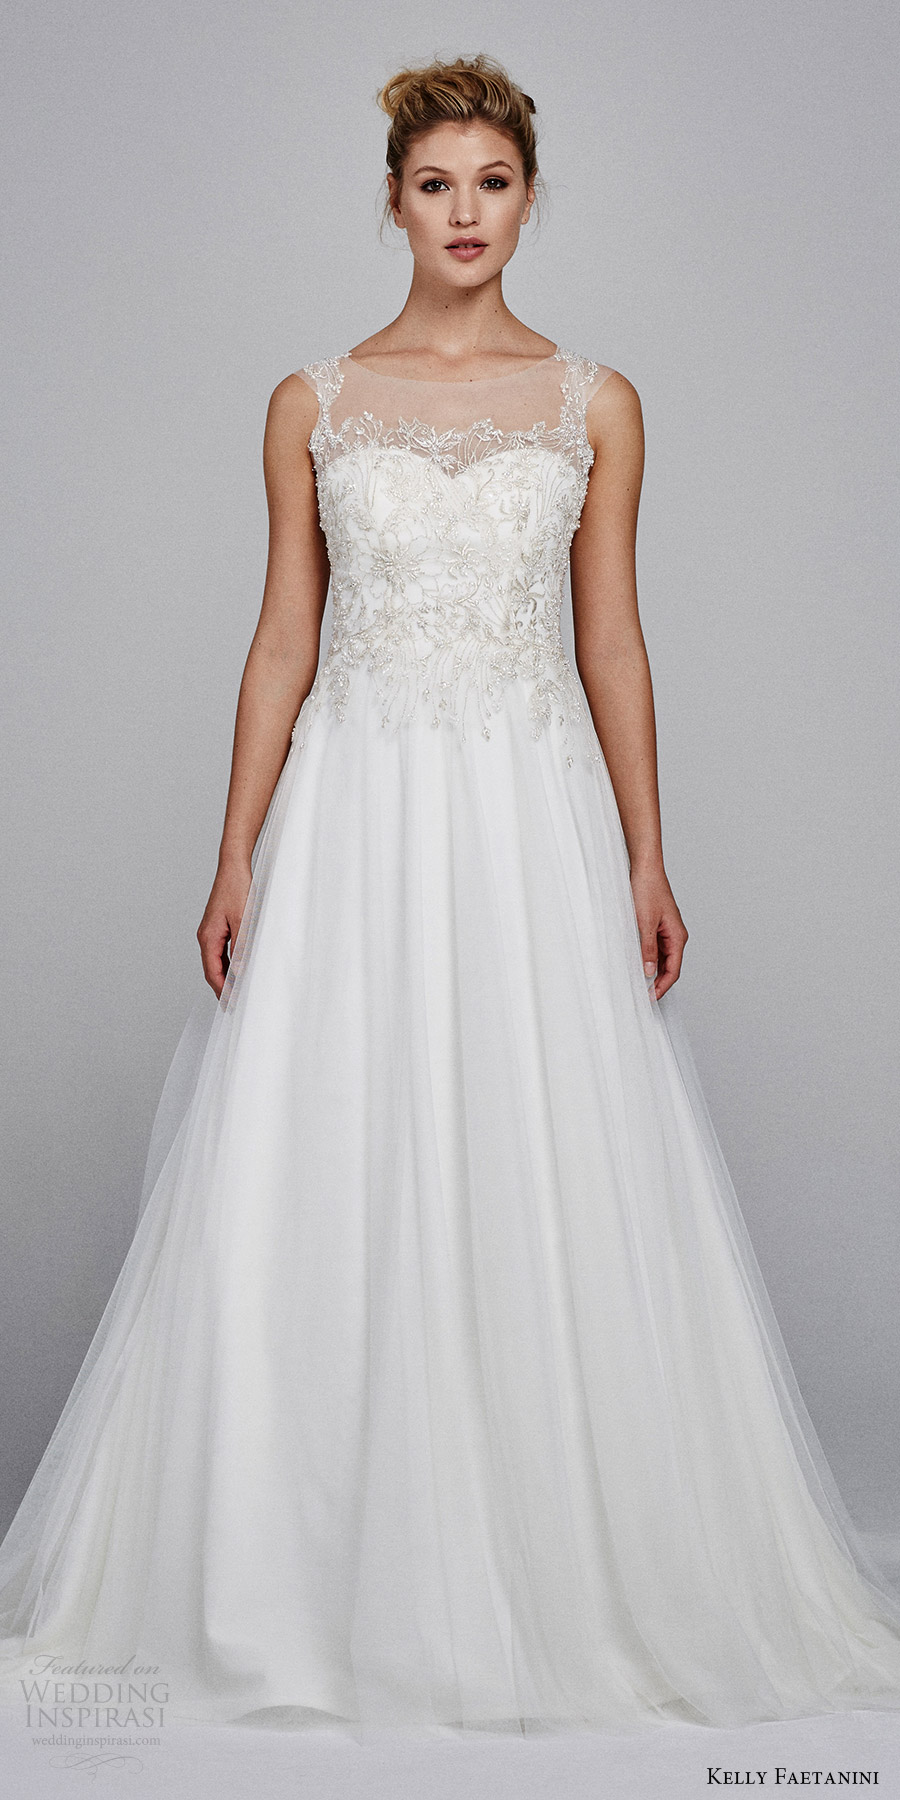 kelly faetanini bridal fall 2017 sleeveless illusion jewel sweetheart tulle embroidery aline wedding dress (marigold) mv